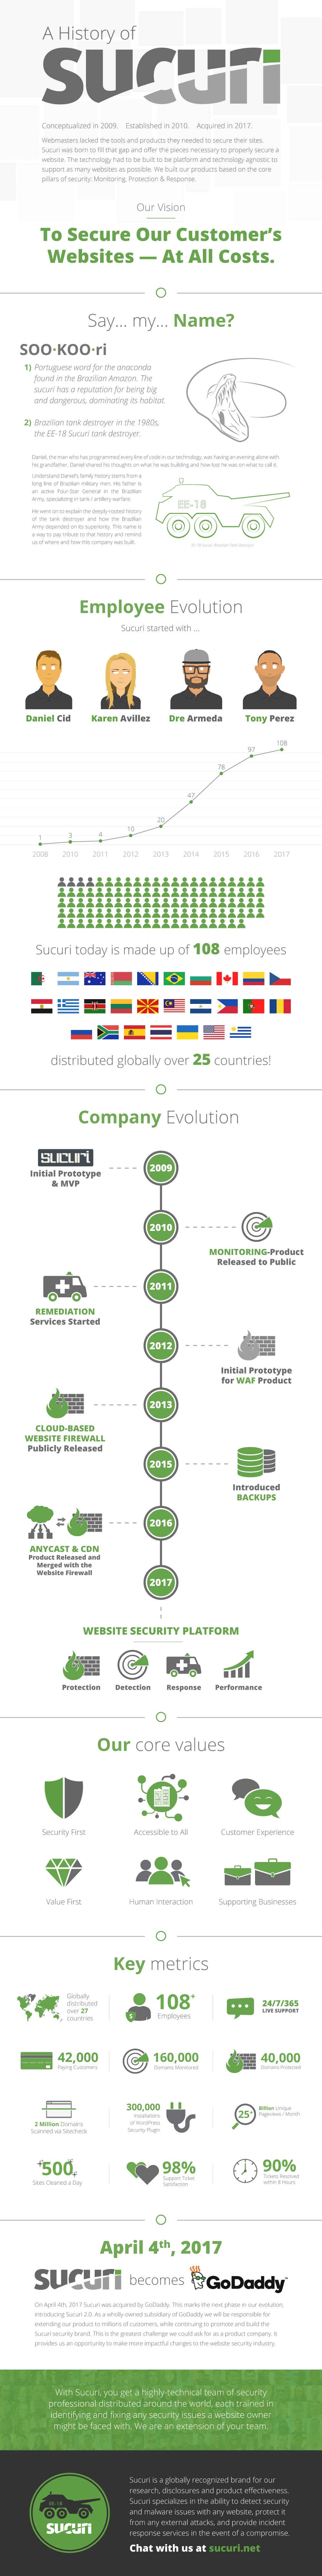 The History of Sucuri Infographic